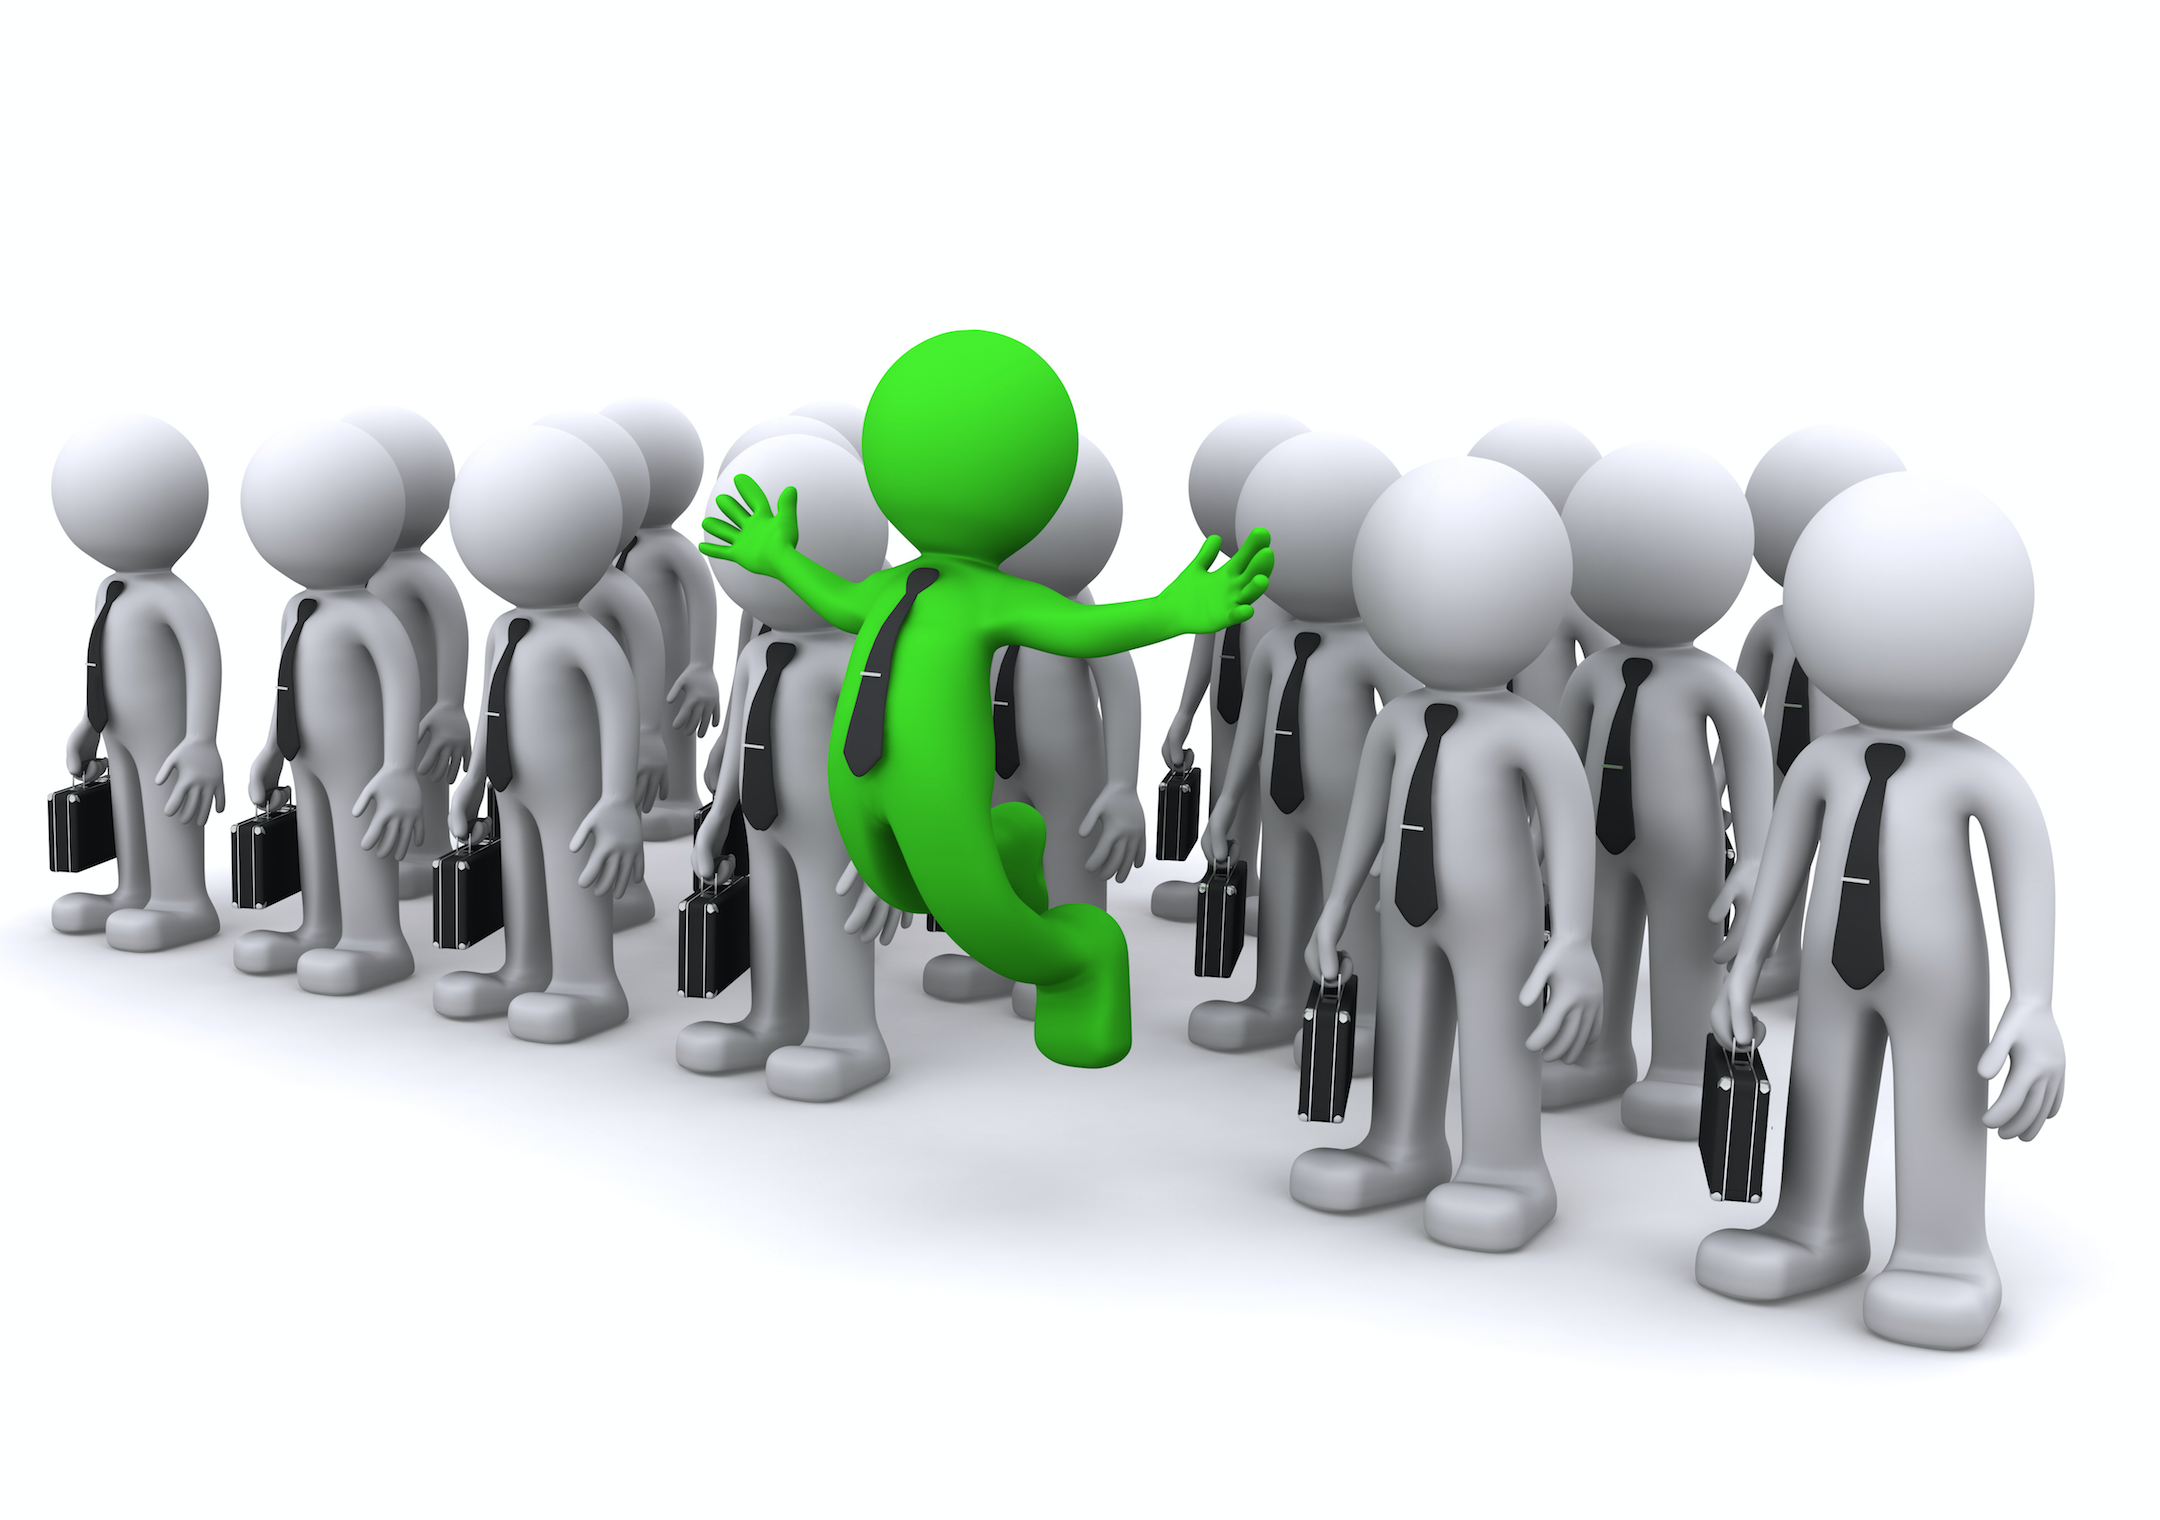 distinguishing yourself from the competition as a jobseeker distinguishing yourself from the competition as a jobseeker